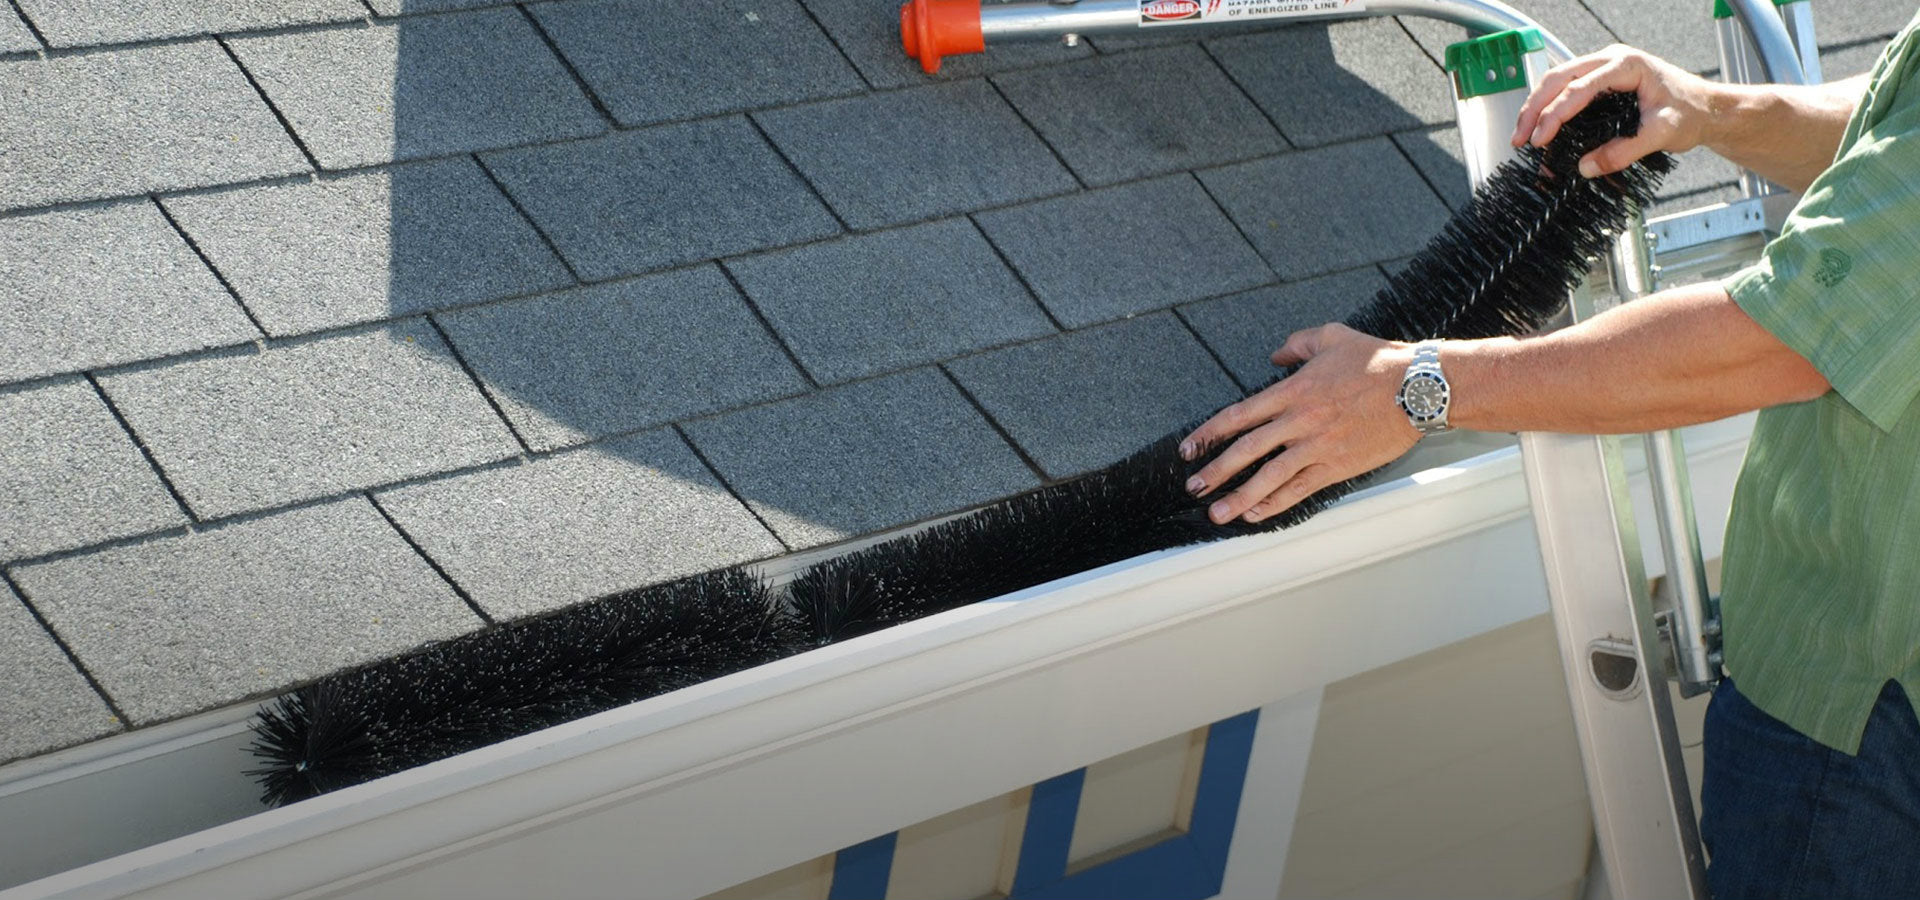 homeownser self installs gutter clog protection.